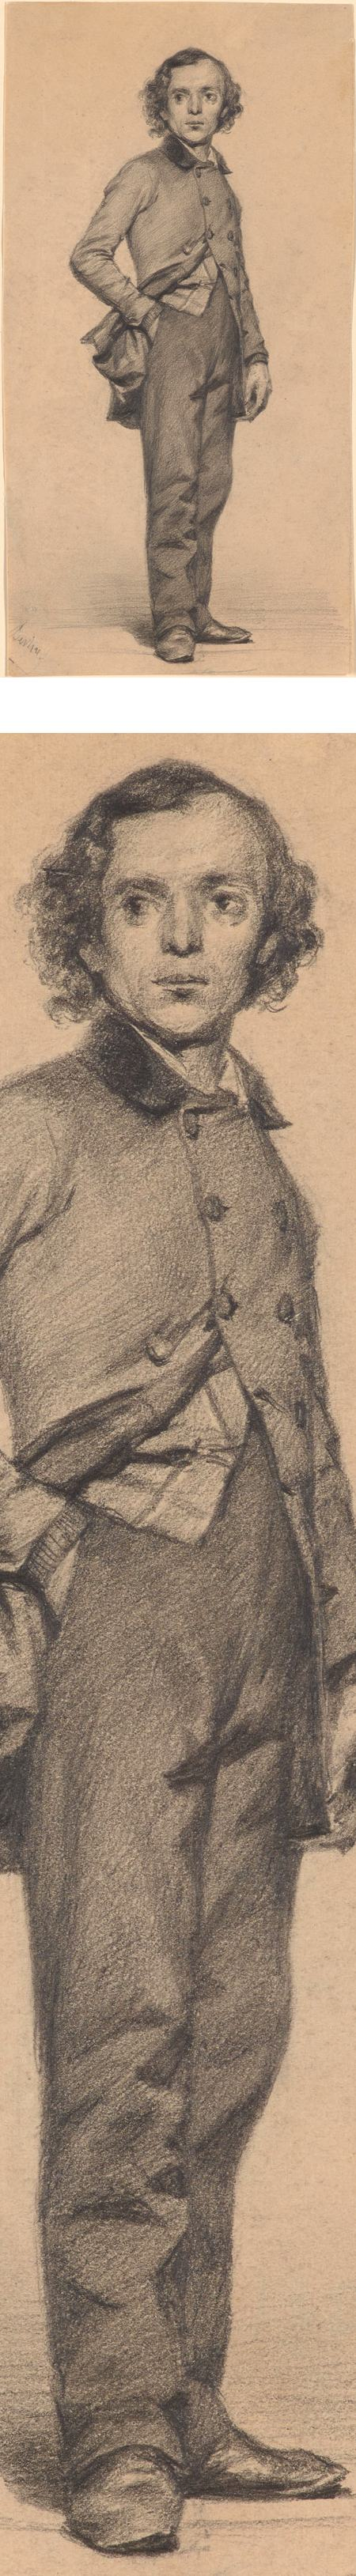 Carl John Arnold, Adolph Menzel, pencil drawing